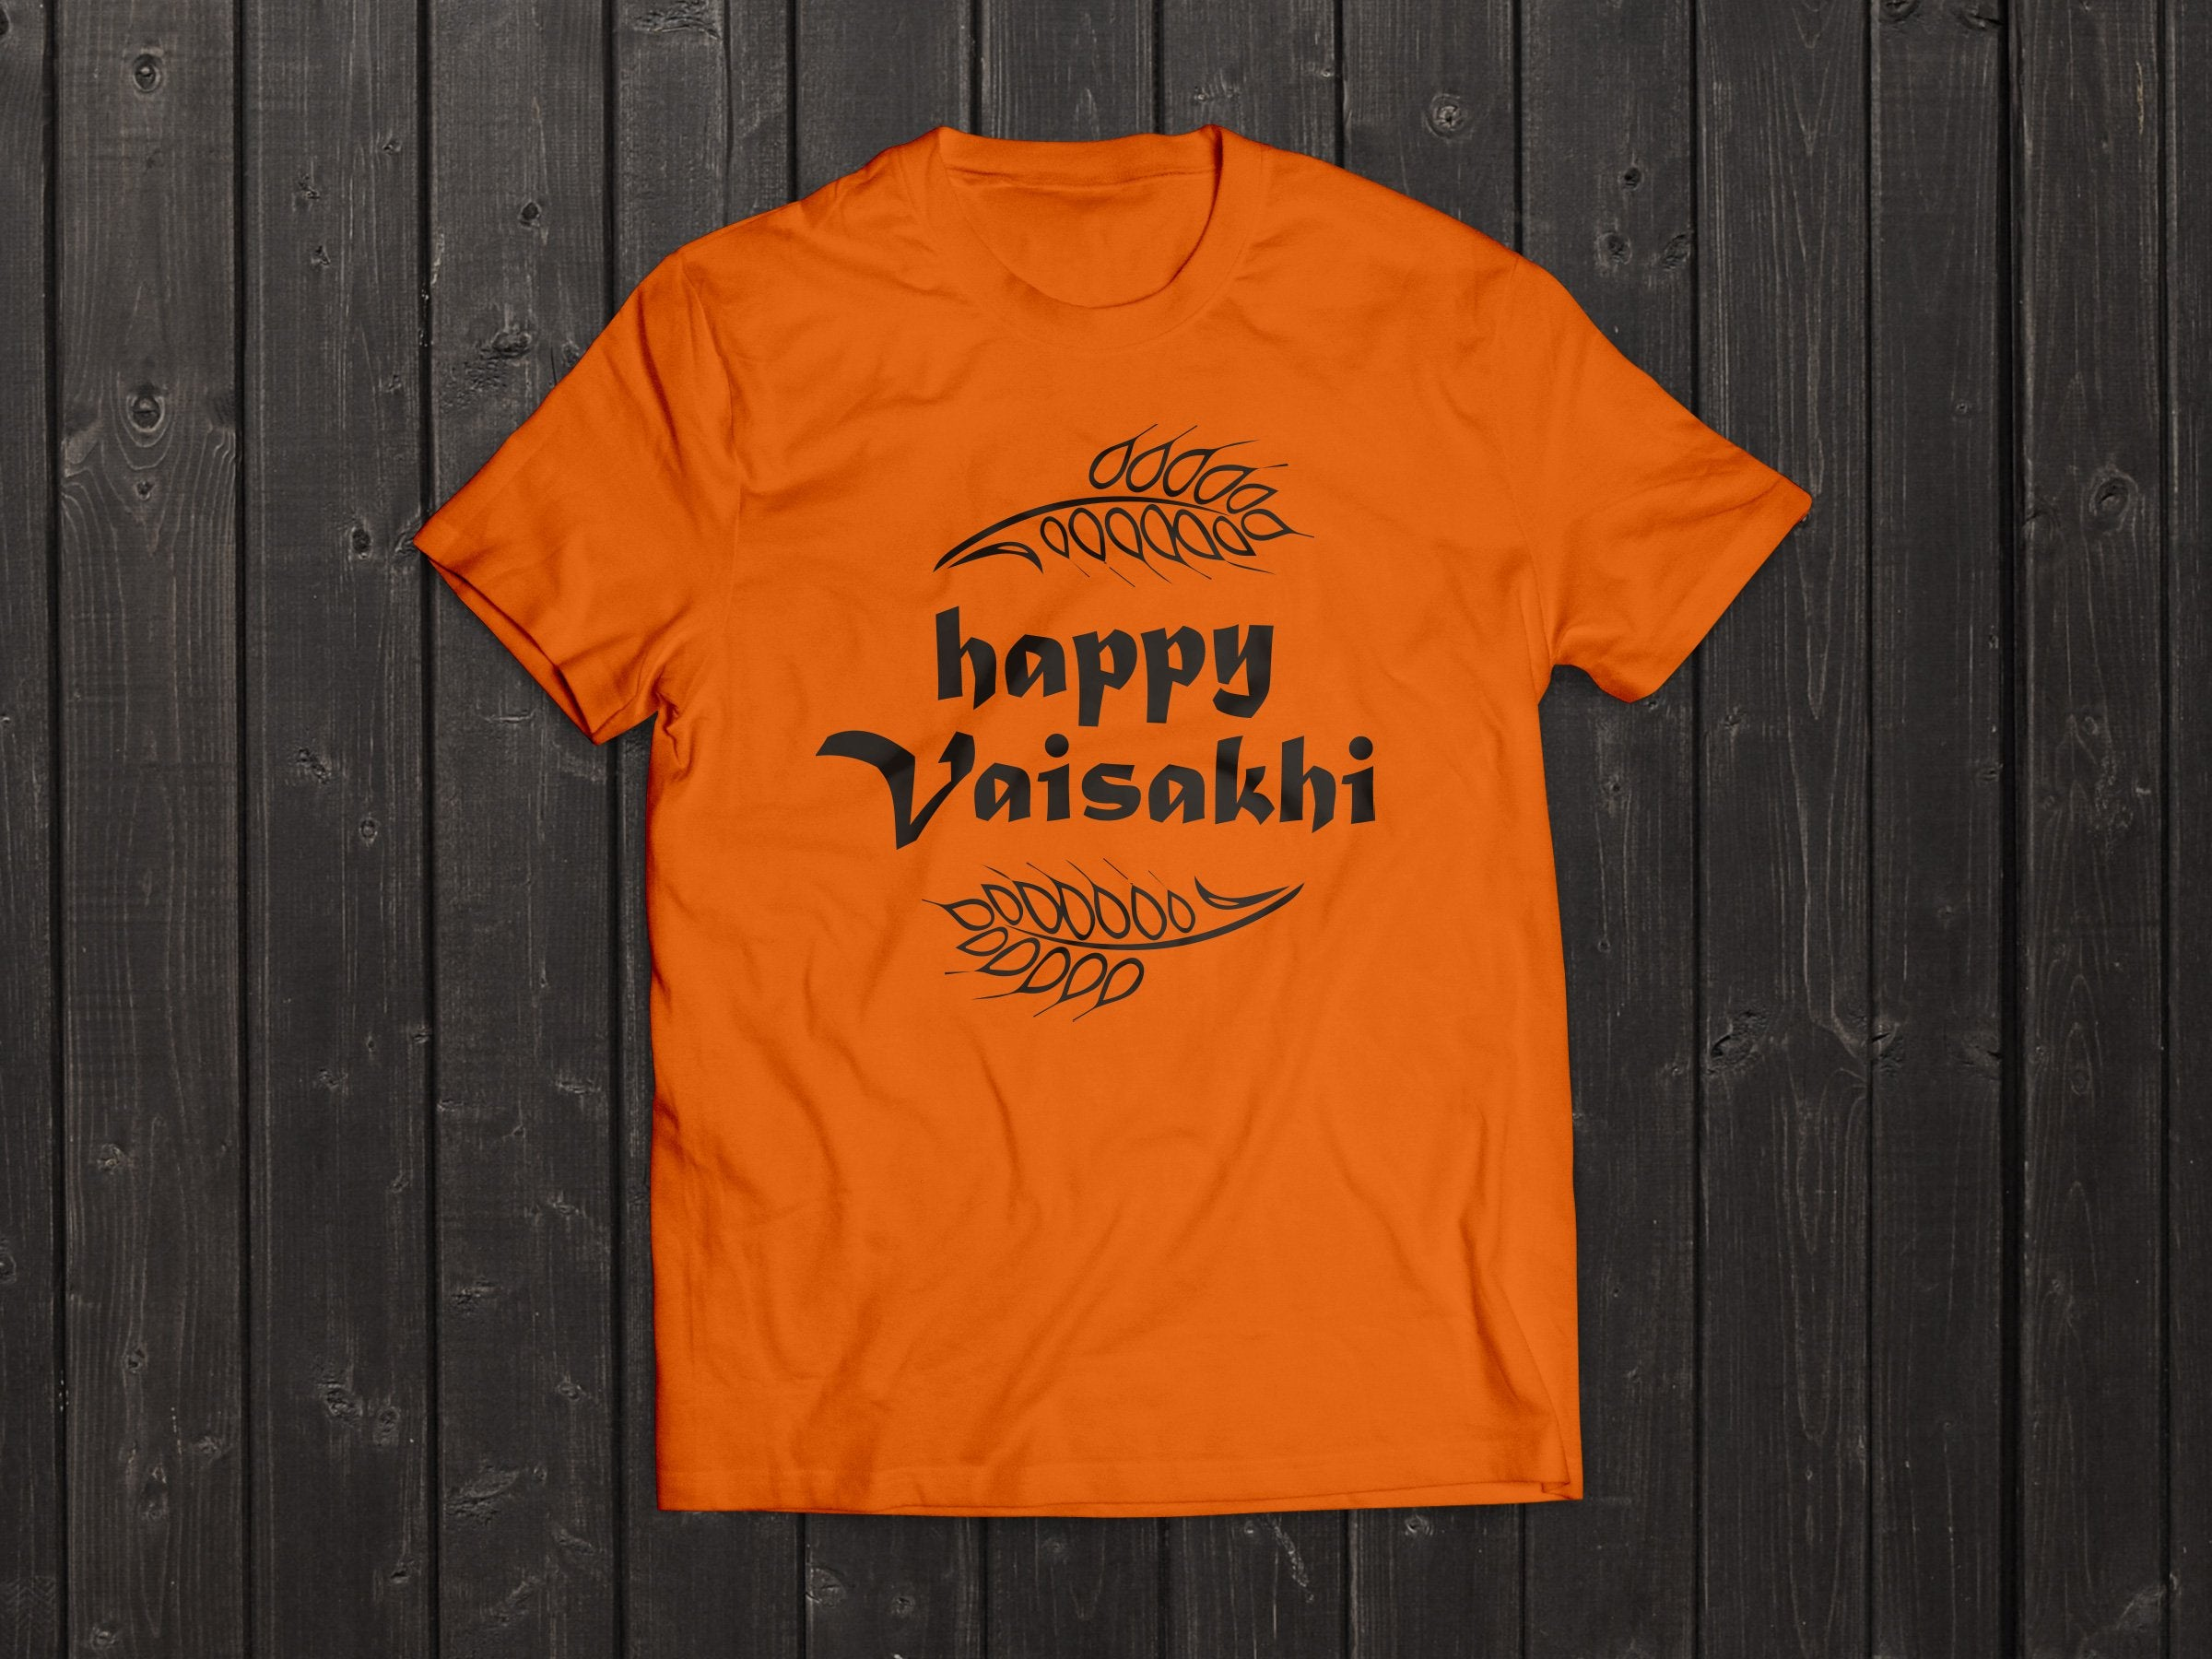 The  Tony Singh Happy Vaisakhi T Shirt in Orange